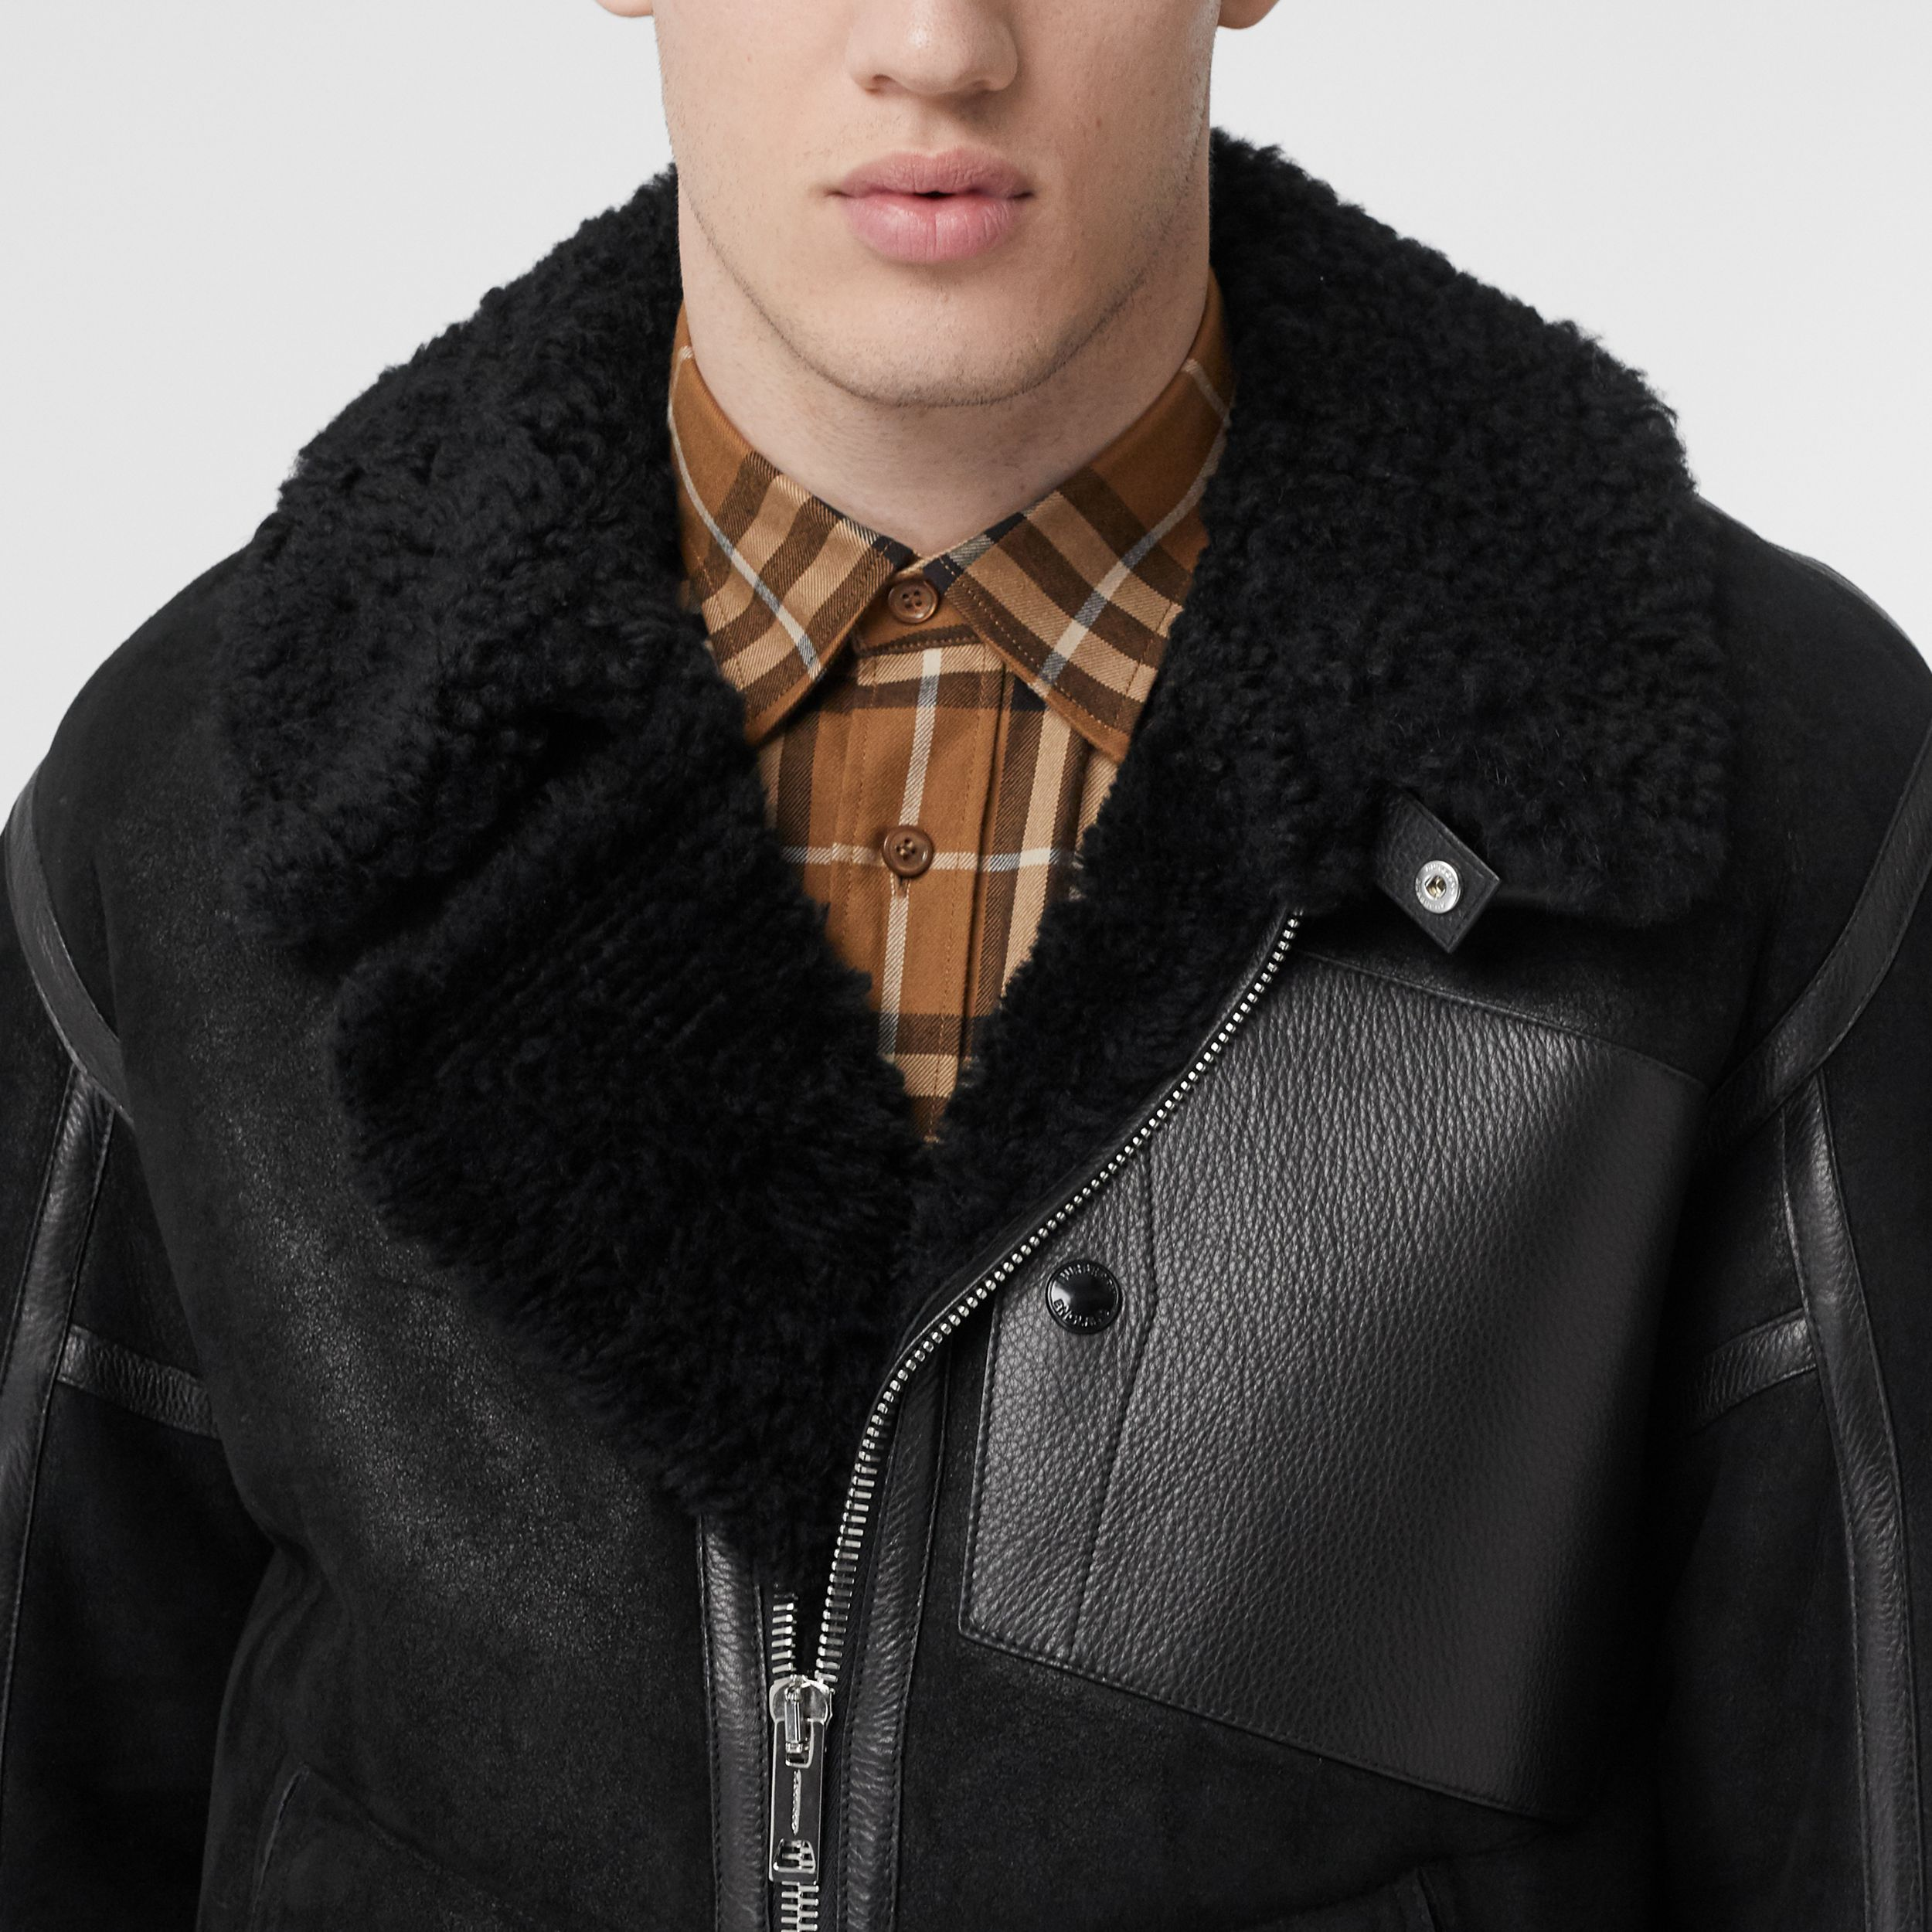 Shearling and Leather Jacket in Black - Men | Burberry - 2